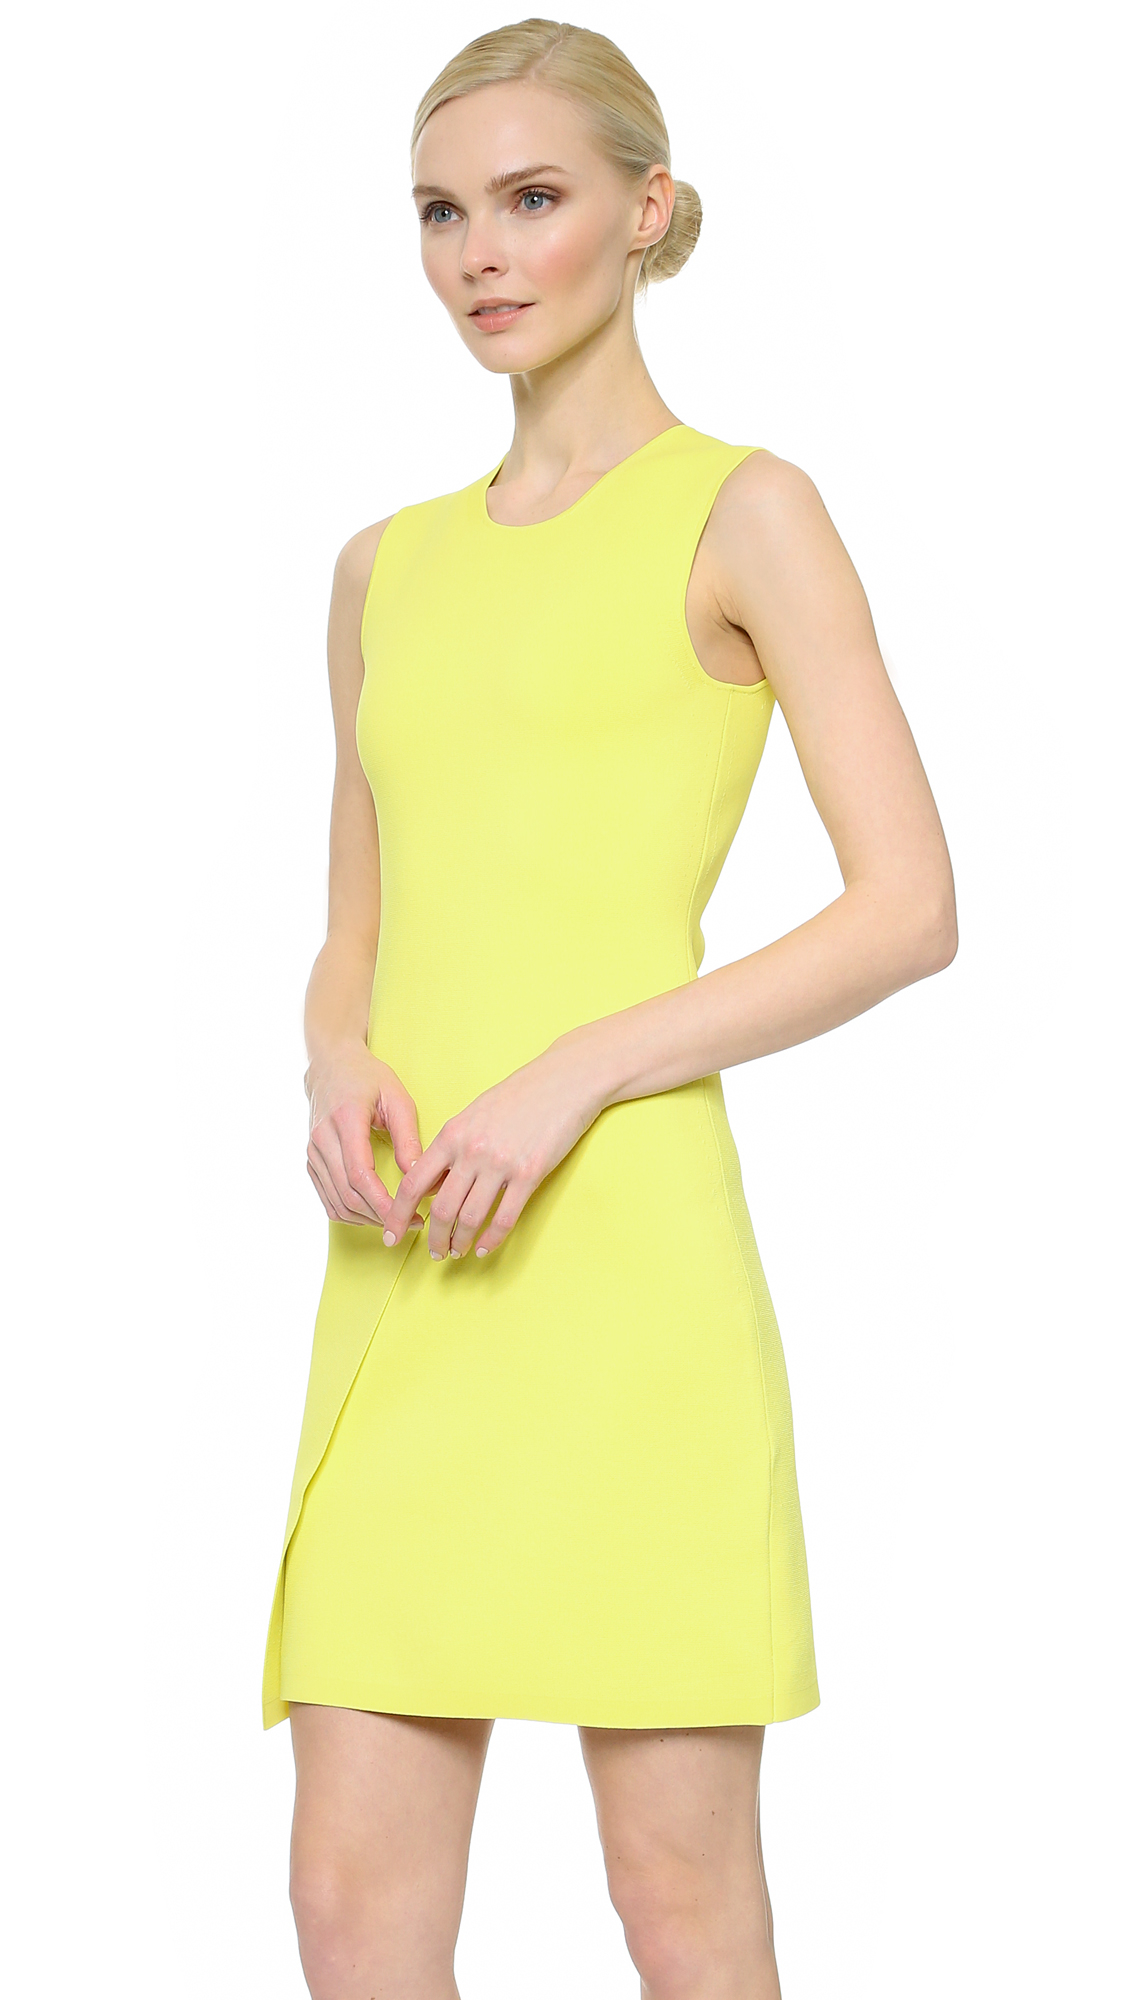 Narciso rodriguez Sleeveless Dress - Neon Yellow in Yellow ...